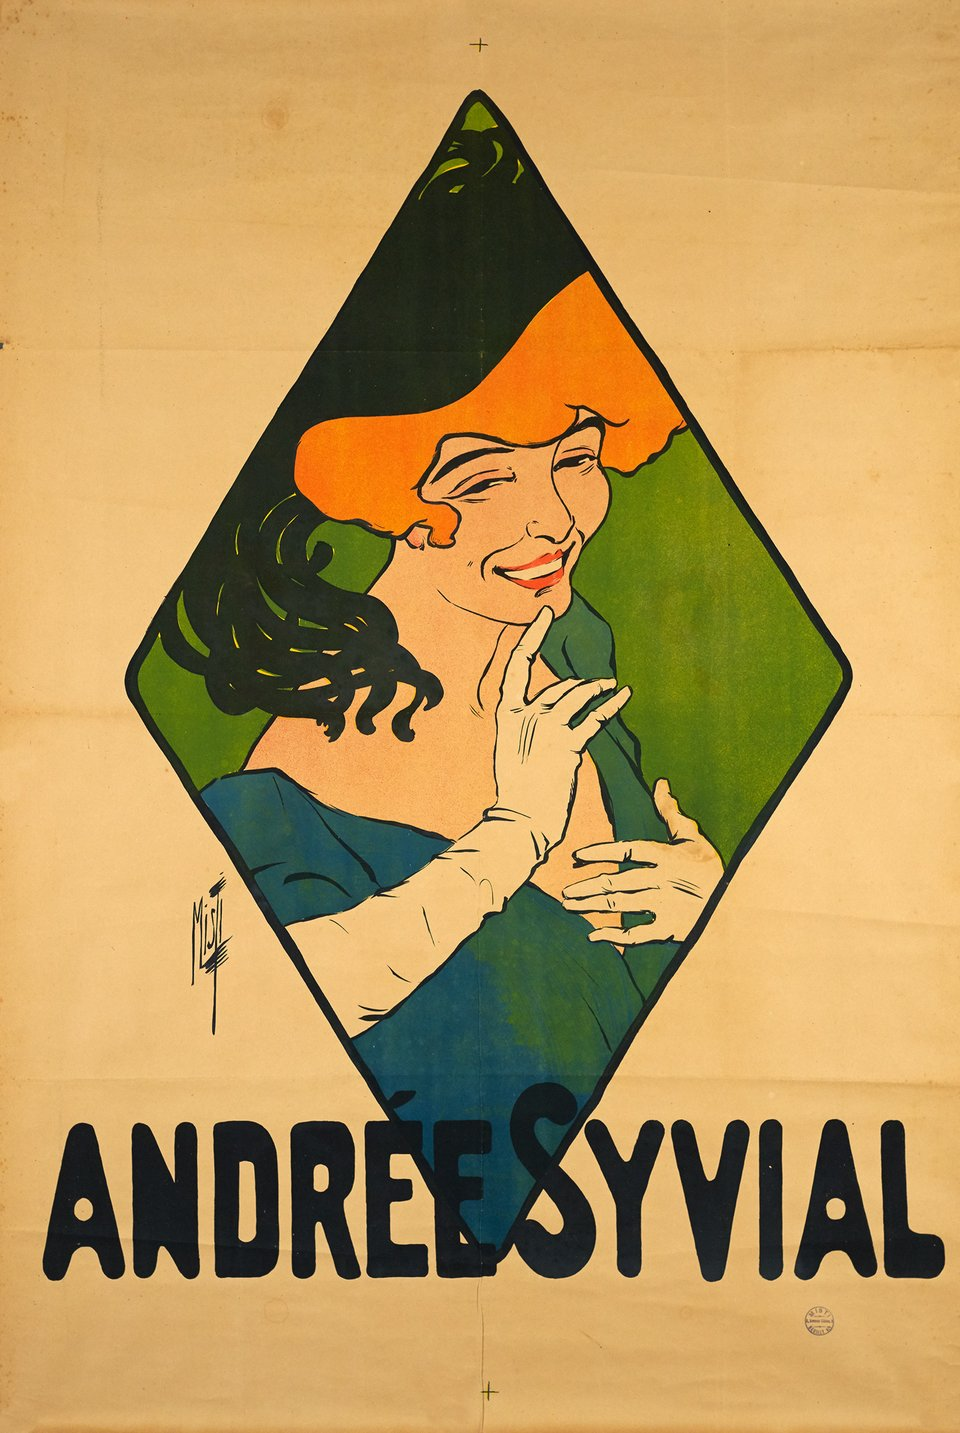 Andrée Syvial – Affiche ancienne – MISTI – 1900